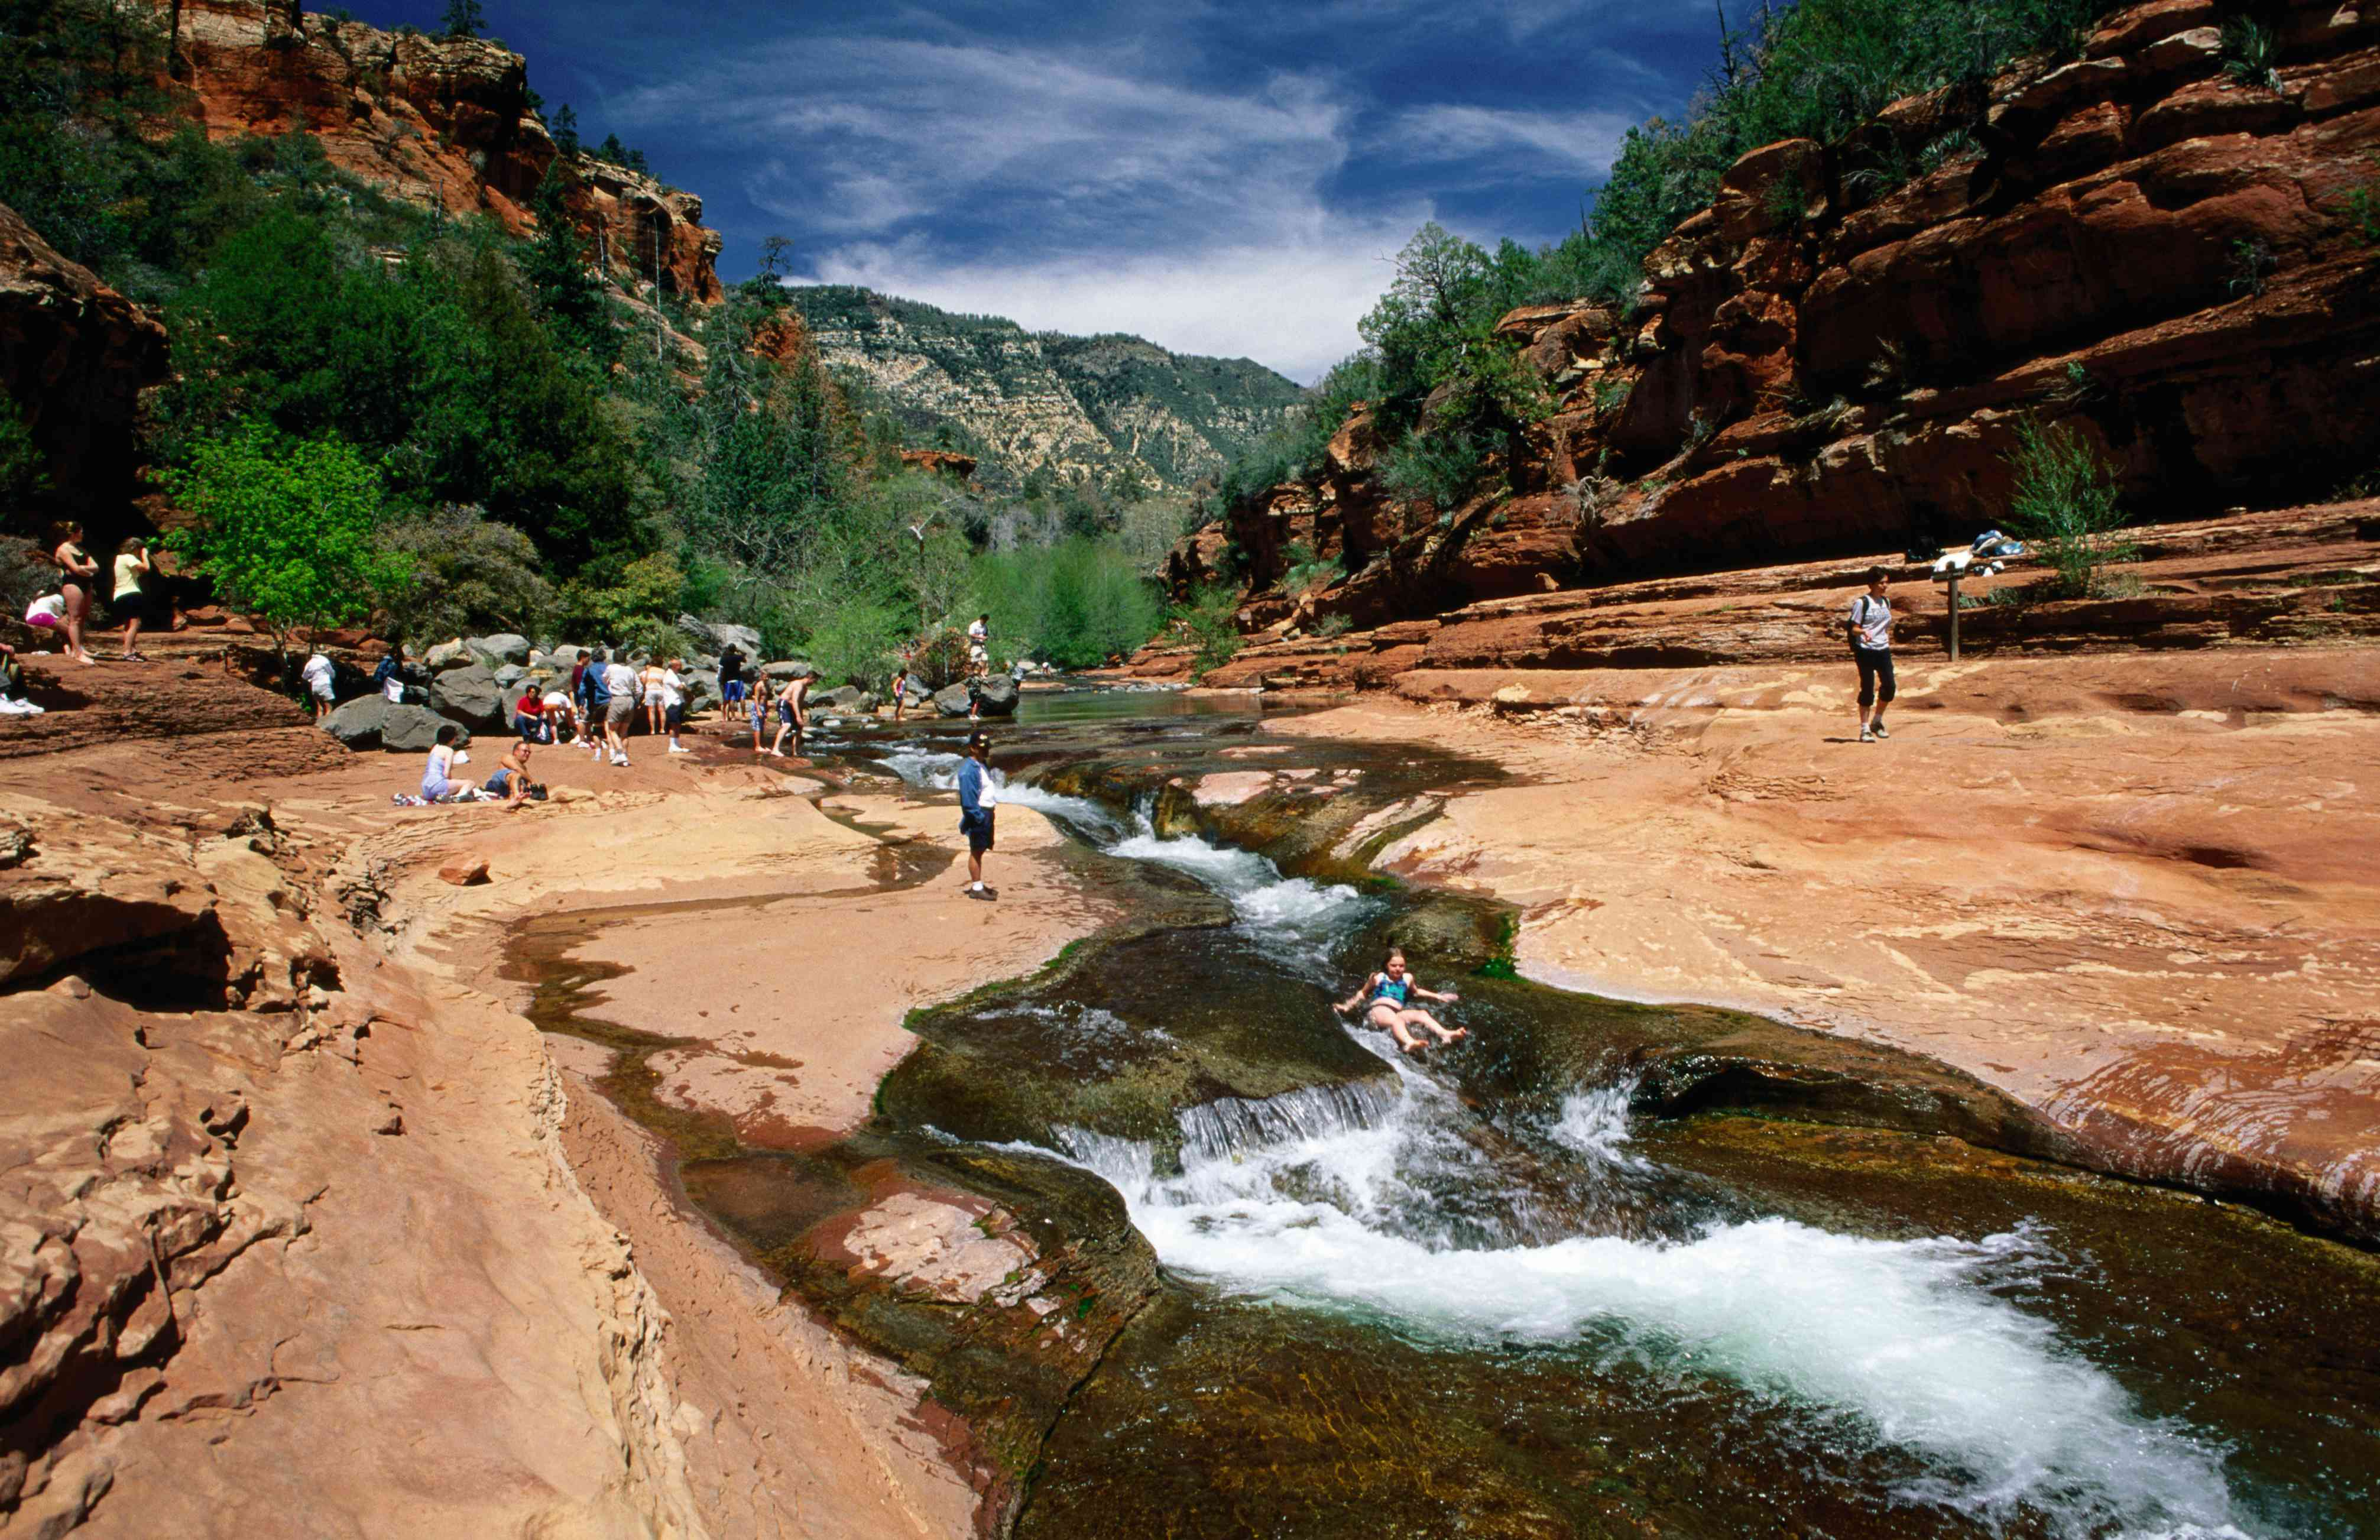 Swimmer in whitewater of Oak Creek at Slide Rock State Park.